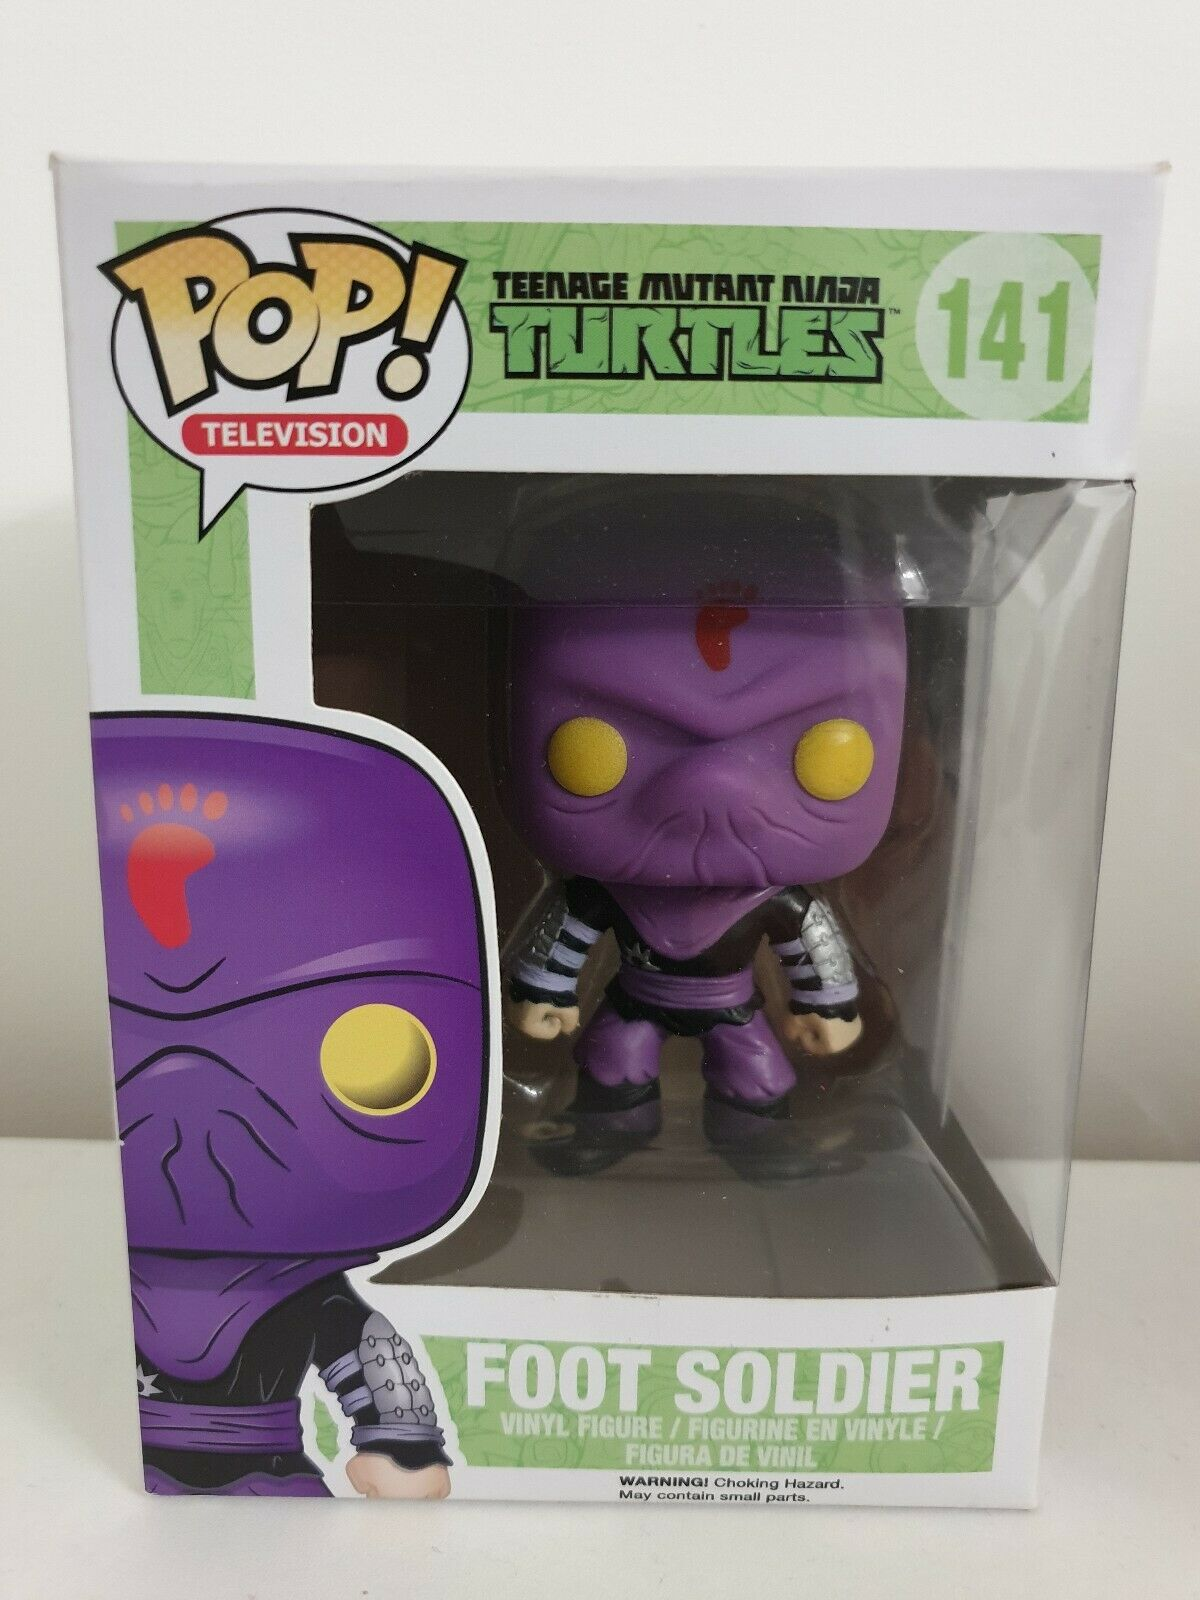 Foot Soldier Funko Pop Vinyl Figure  141 Teenage Mutant Ninja Turtles TMNT